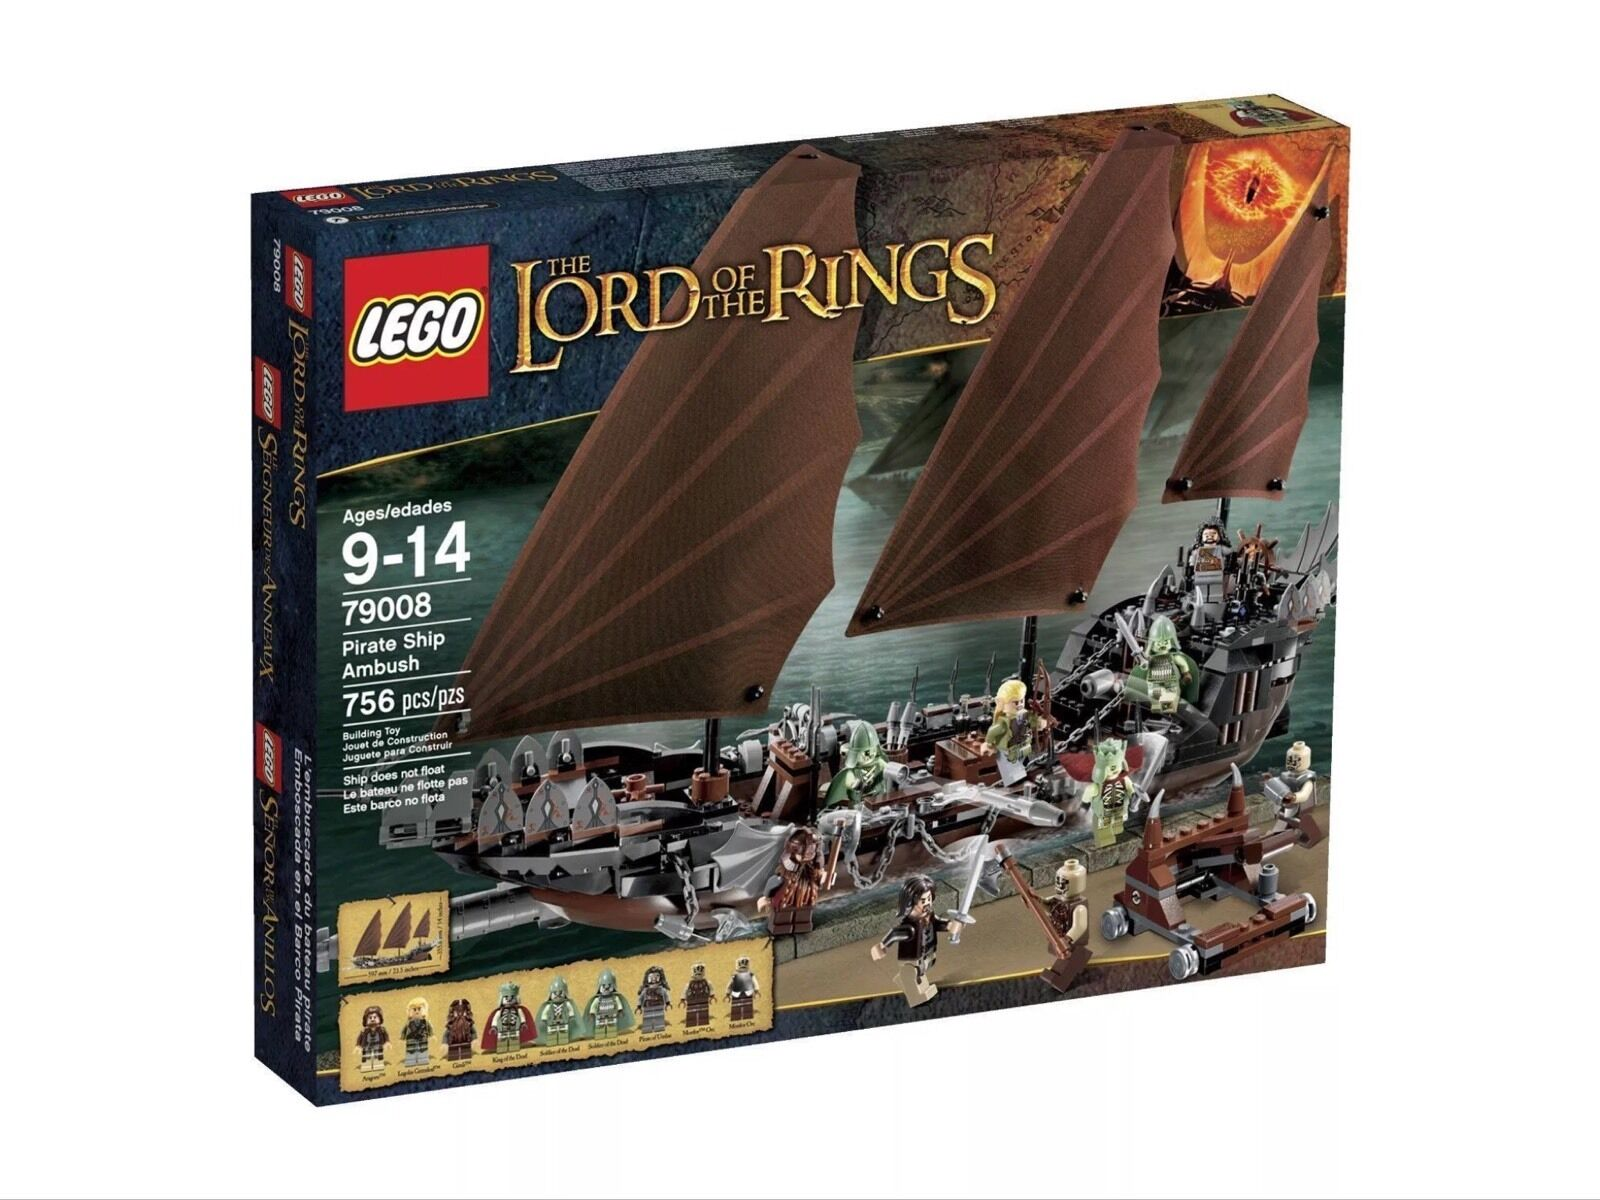 LEGO Lord of The Rings 79008 Pirate Ship Ambush New Sealed RetiROT